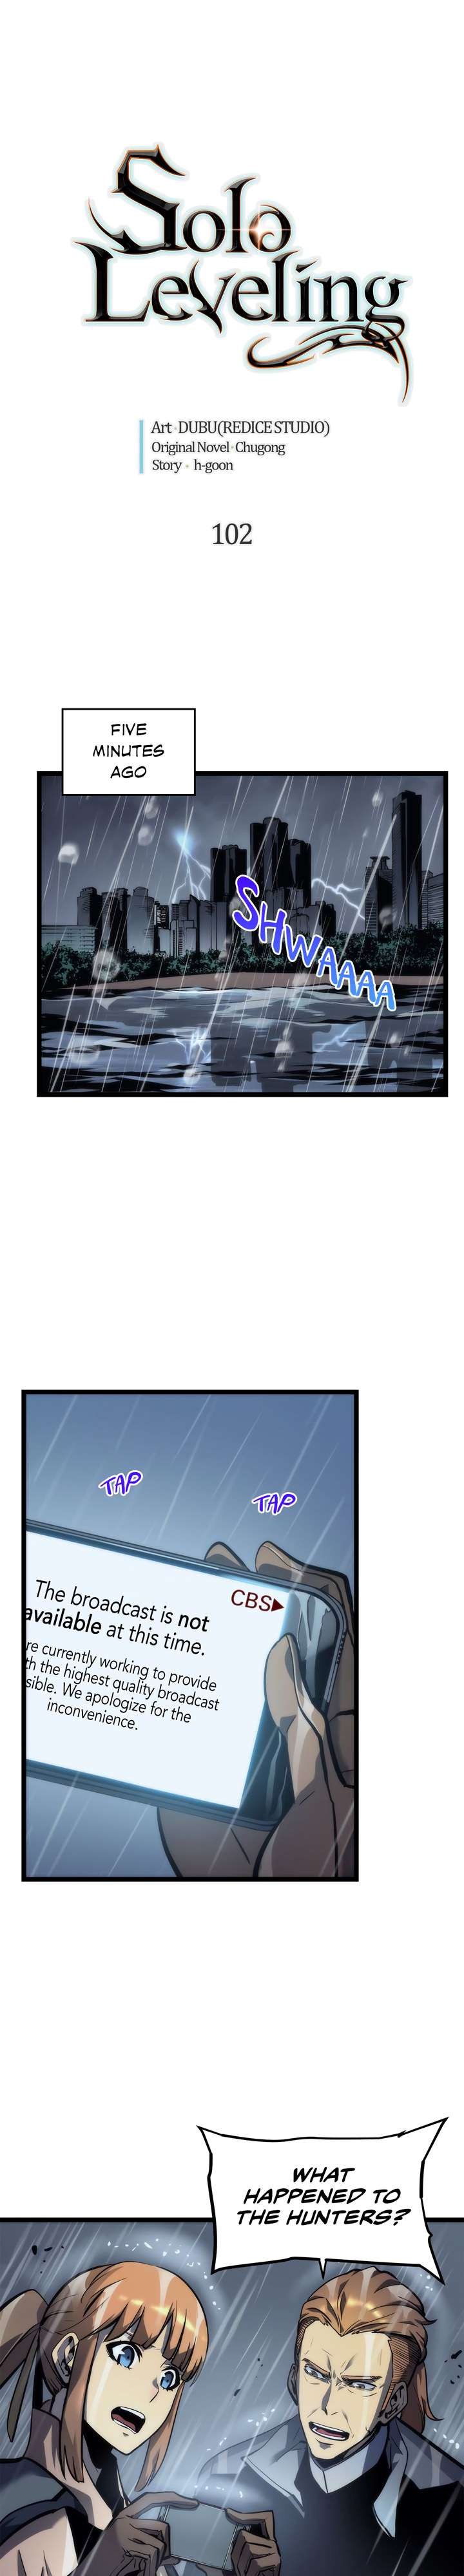 Solo Leveling Chapter 102 Page 3